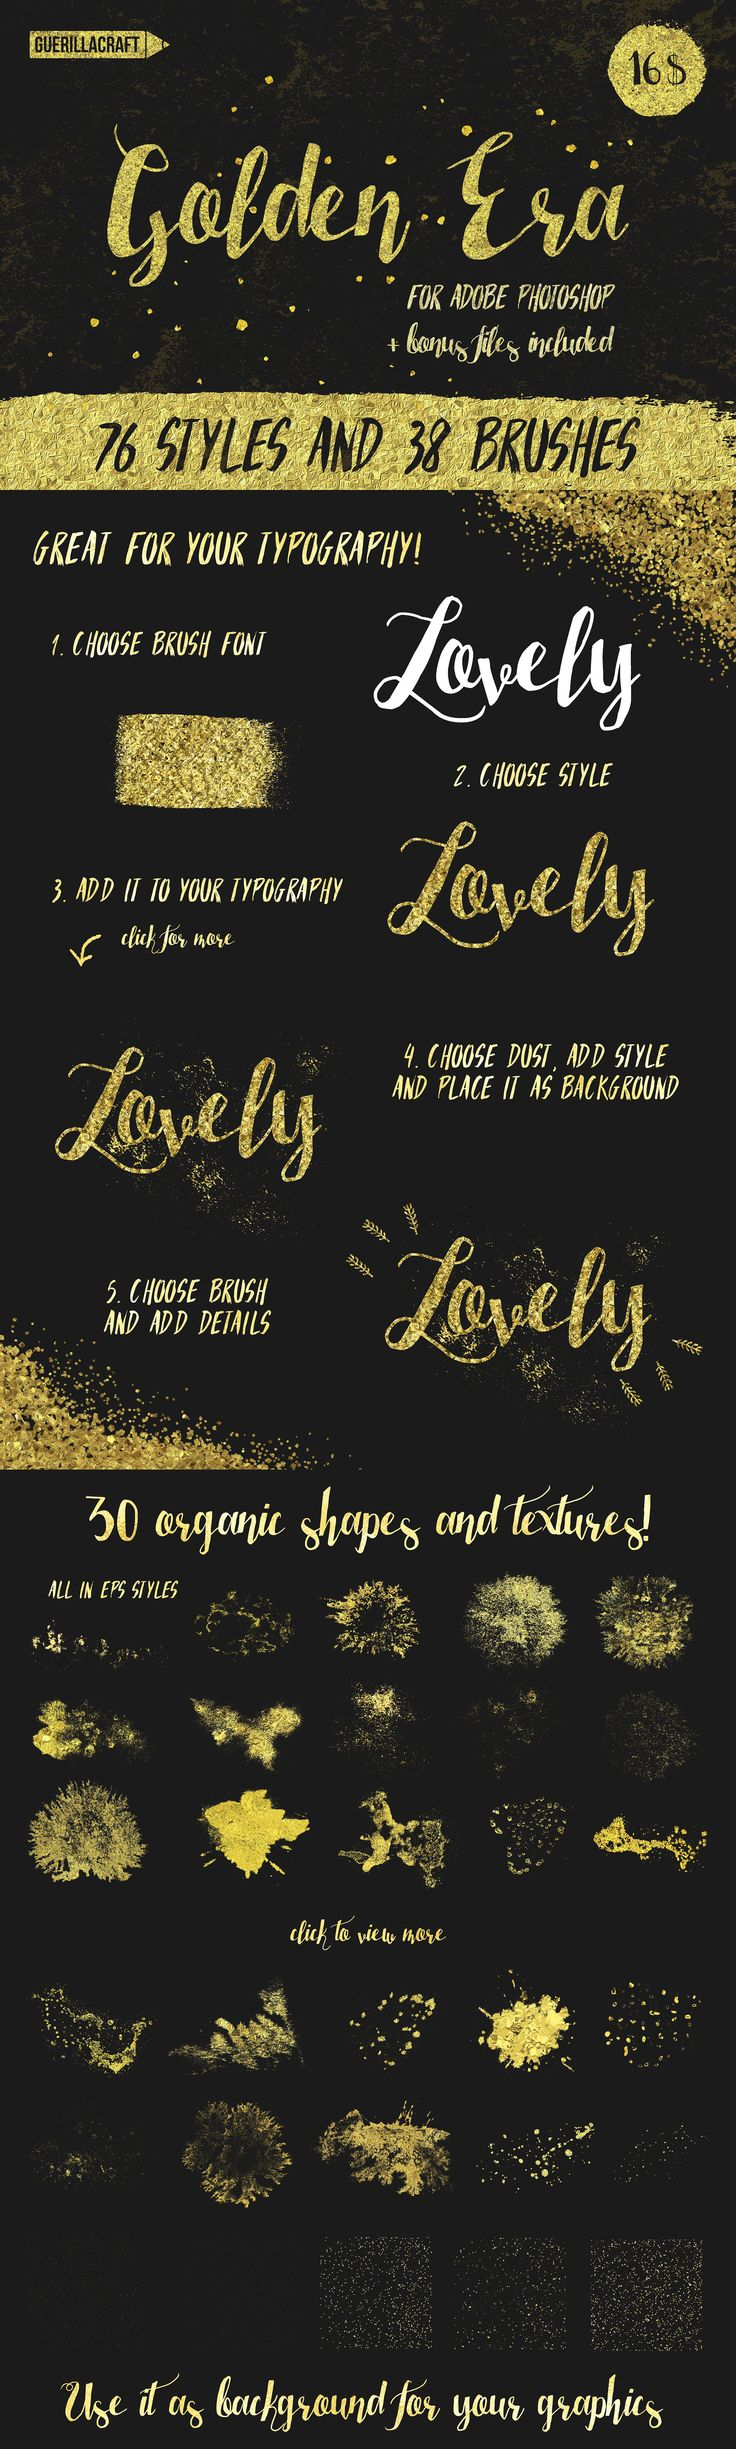 Golden Era for Adobe Photoshop is a classy collection of 76 golden styles, 30 ornamental and scatter brushes and 30 vector shapes & textures. You can use for your blog graphics, printables, lettering and etc. Just choose object or font and apply an gold graphic style. Add sparkle details with brushes. Get this amazing graphic style collection for Adobe Photoshop on Creative Market! All Golden Styles are seamless!